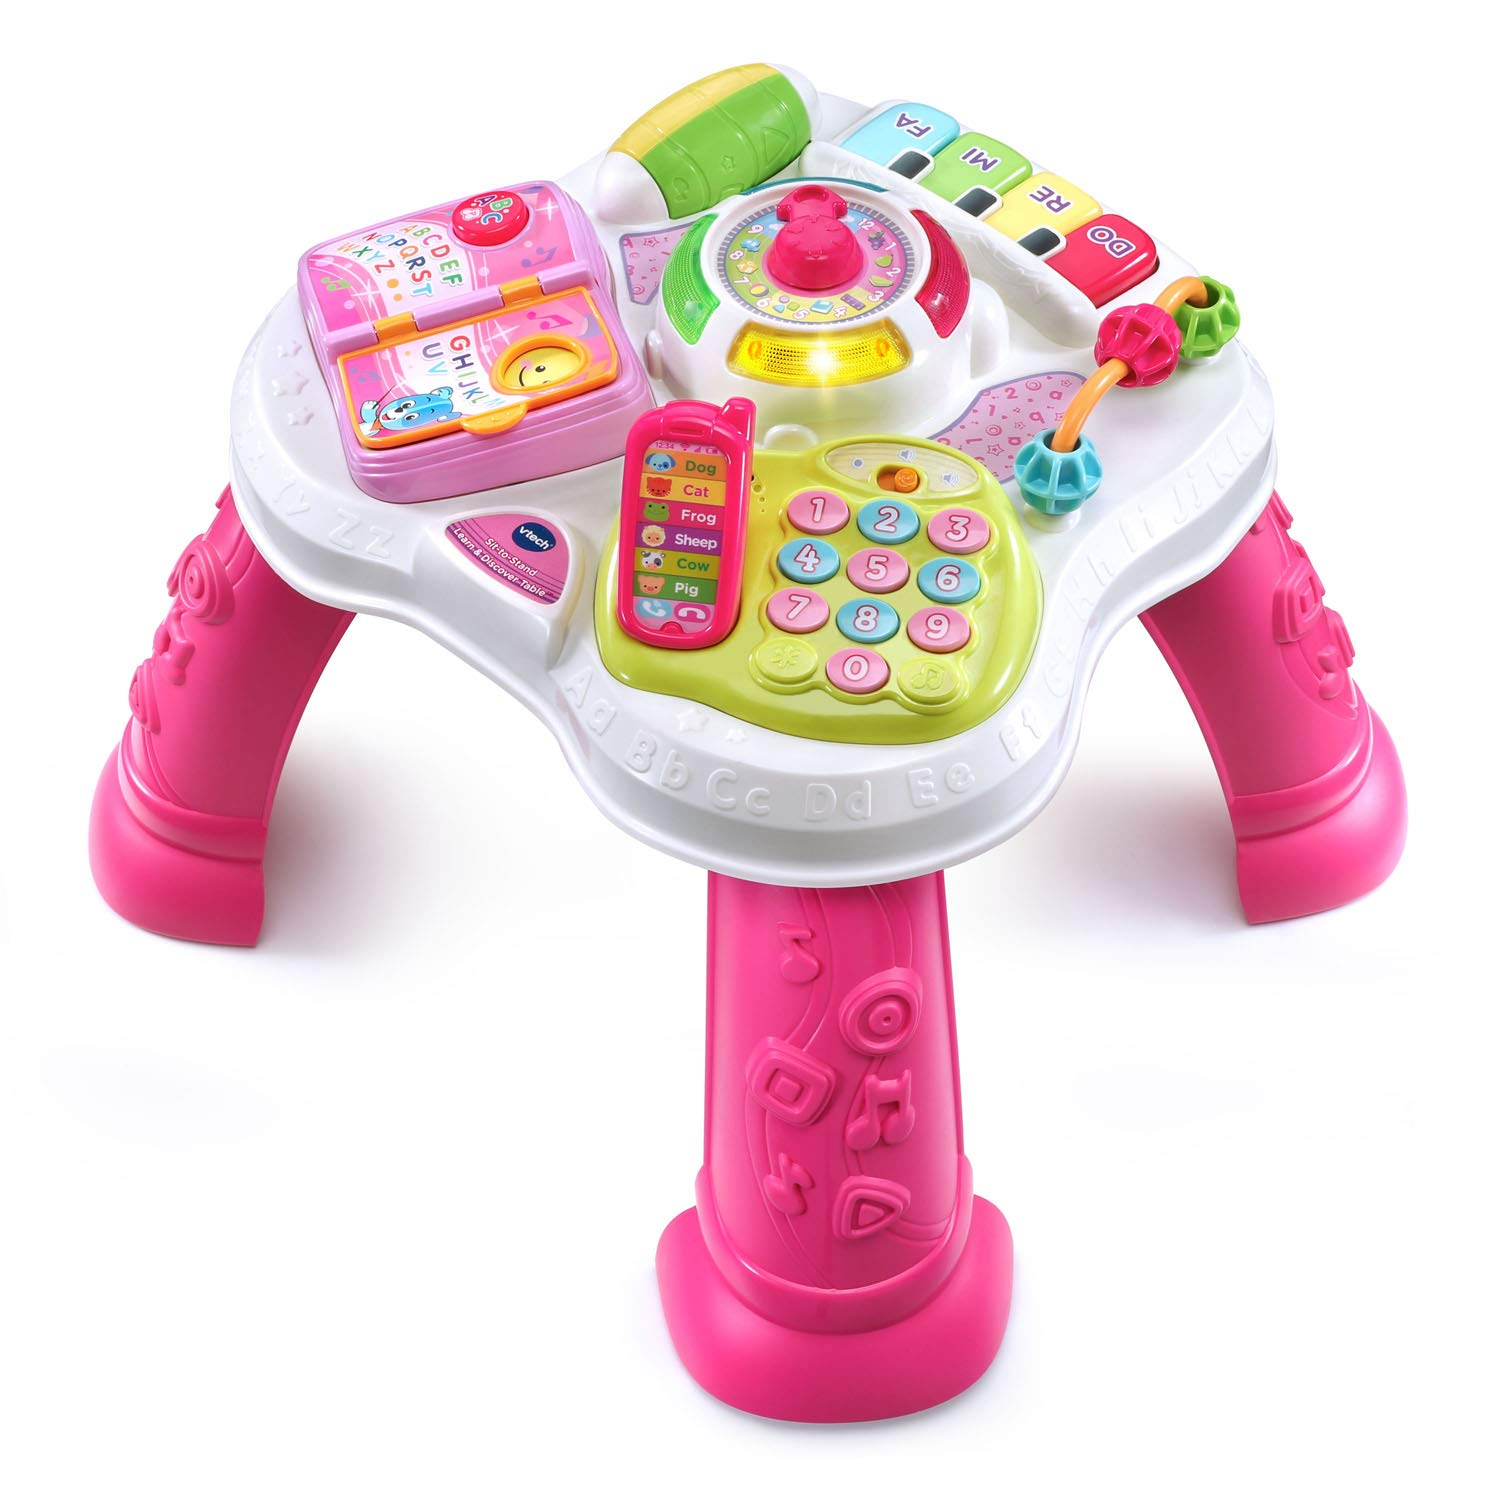 VTech Sit-To-Stand Learn & Discover Table, Pink by VTech (Image #2)